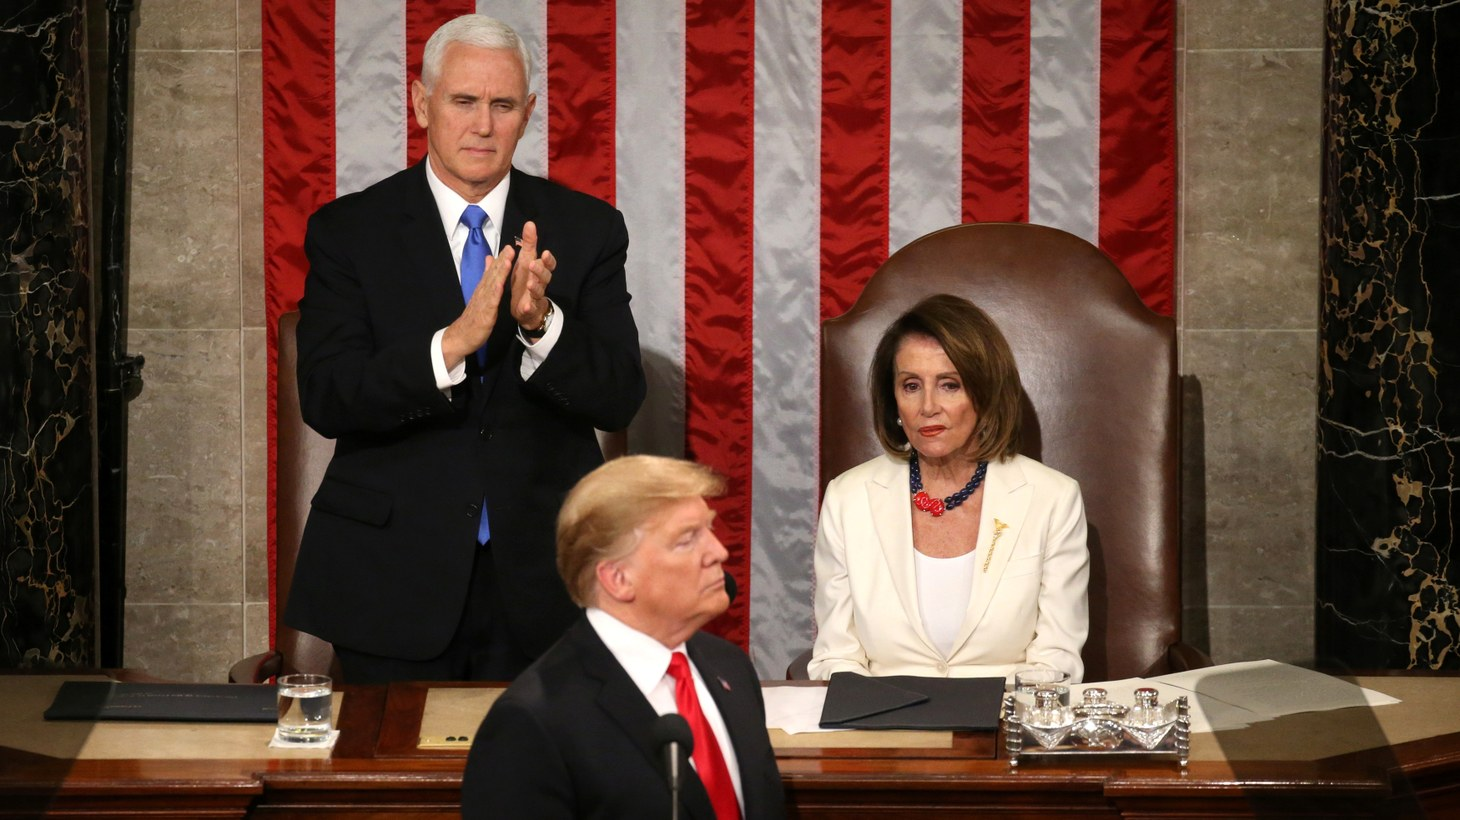 Speaker of the House Nancy Pelosi (D-CA) reacts alongside Vice President Mike Pence as he applauds U.S. President Donald Trump during his second State of the Union address to a joint session of the U.S. Congress in the House Chamber of the U.S. Capitol on Capitol Hill in Washington, U.S. February 5, 2019.